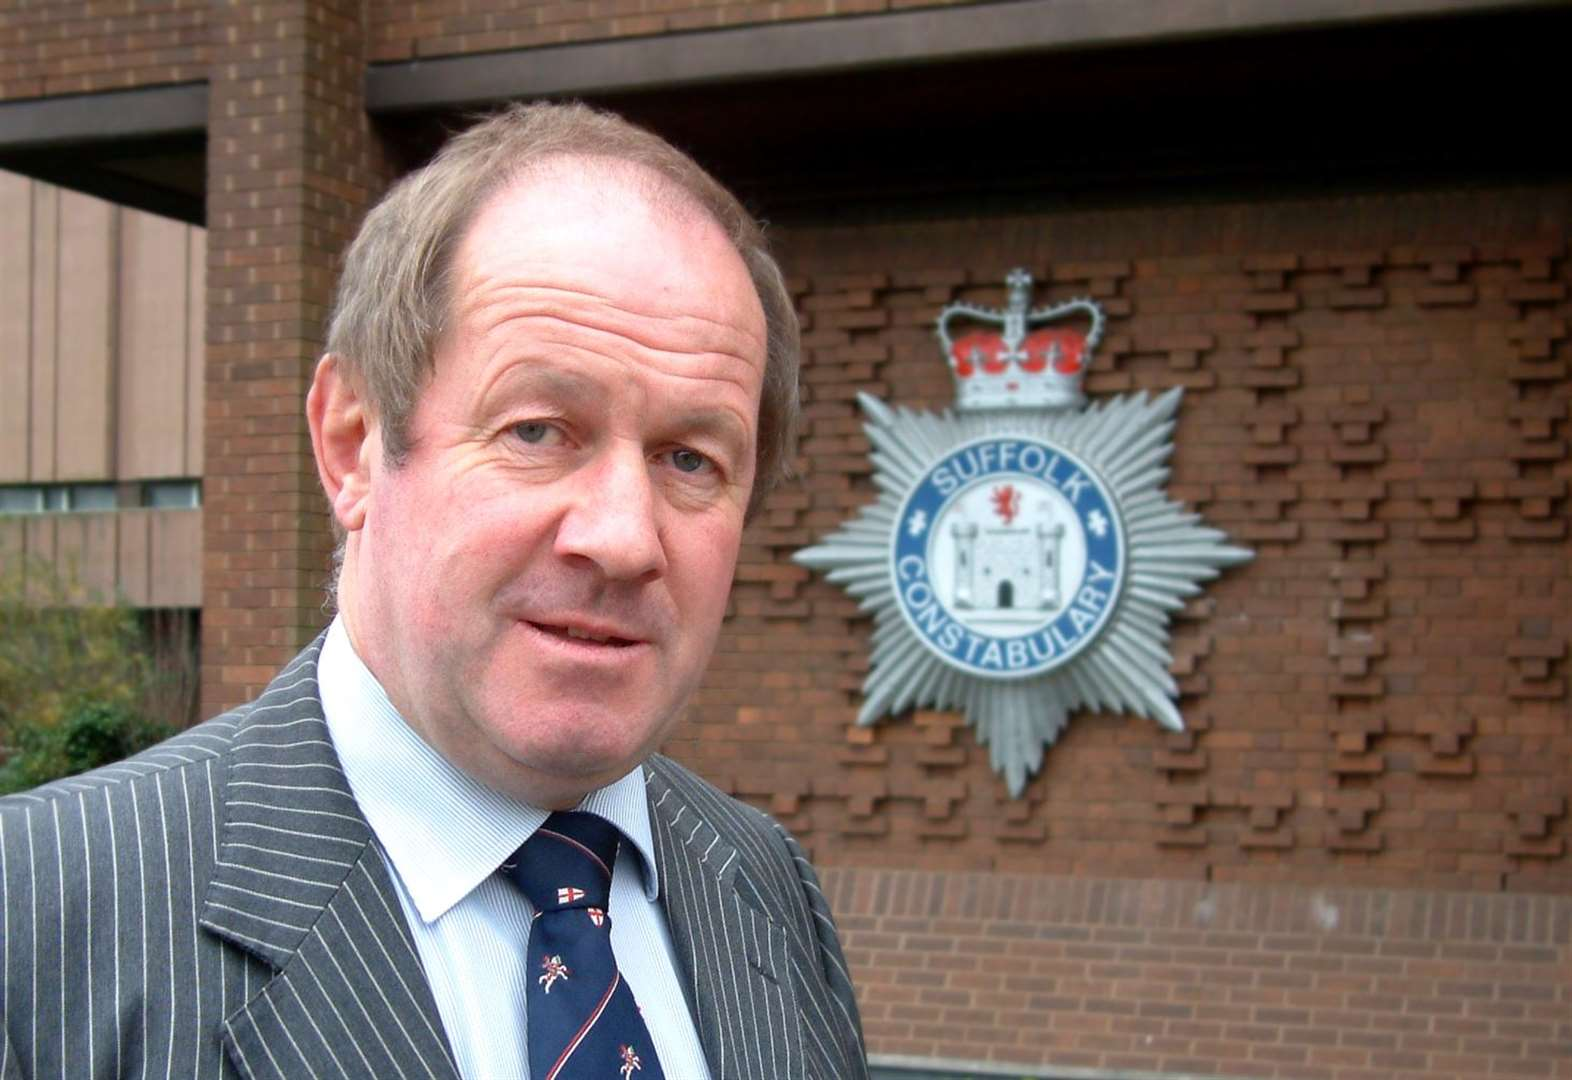 Suffolk police commissioner brands Home Office 'misguided' over funding snub to tackle youth violence